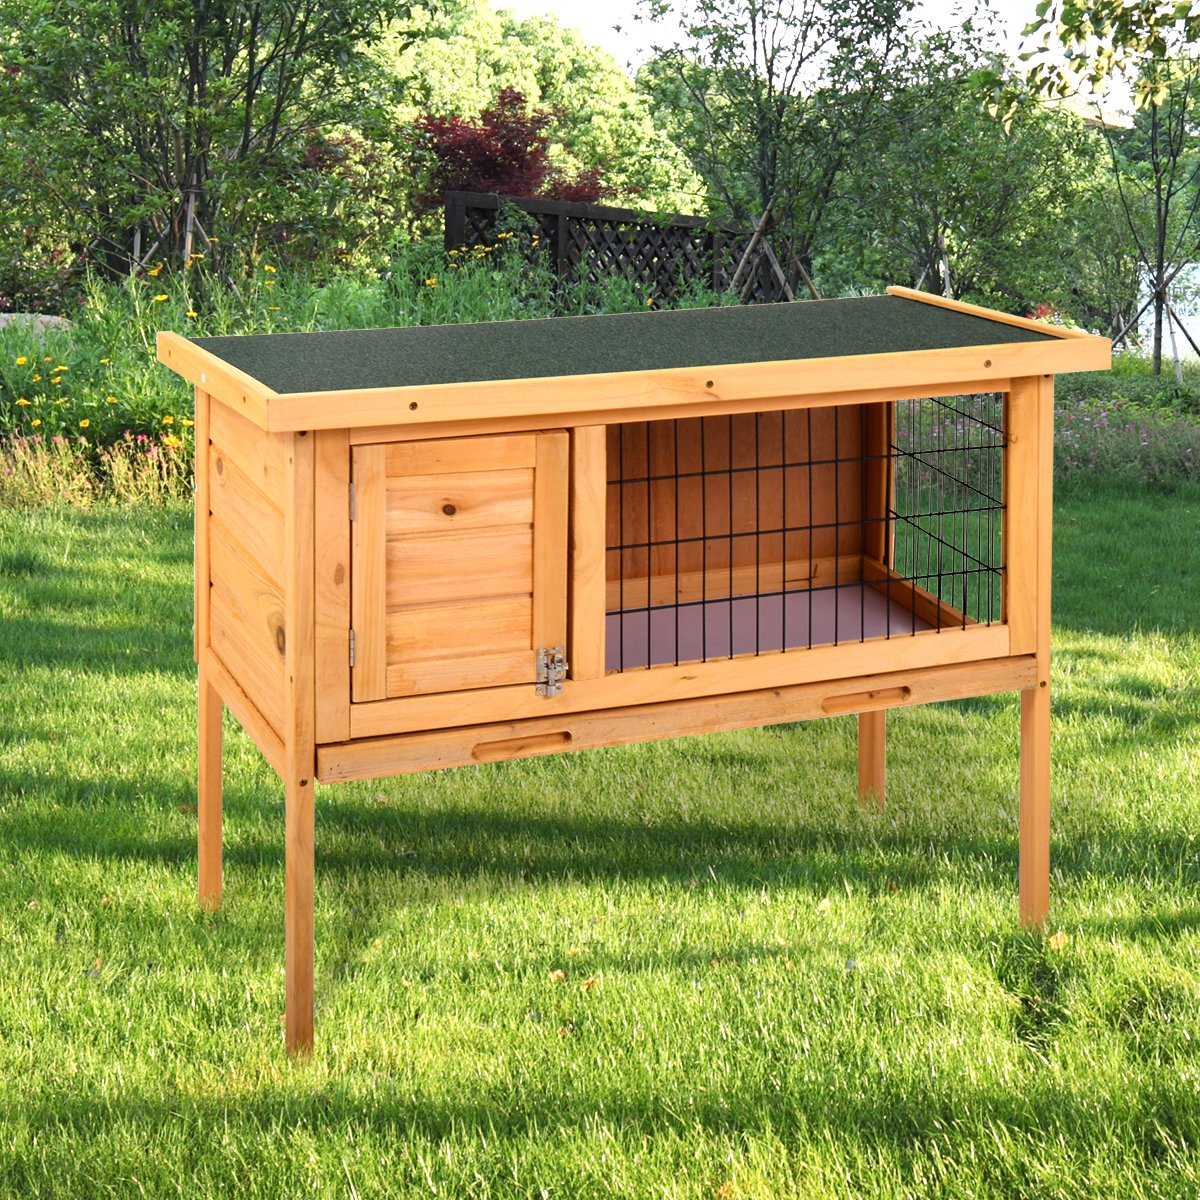 MIERES Wooden Pet House Rabbit Bunny Wood Hutch House Chicken Coops Rabbit Cage Rabbit Hutch, Brown by MIERES